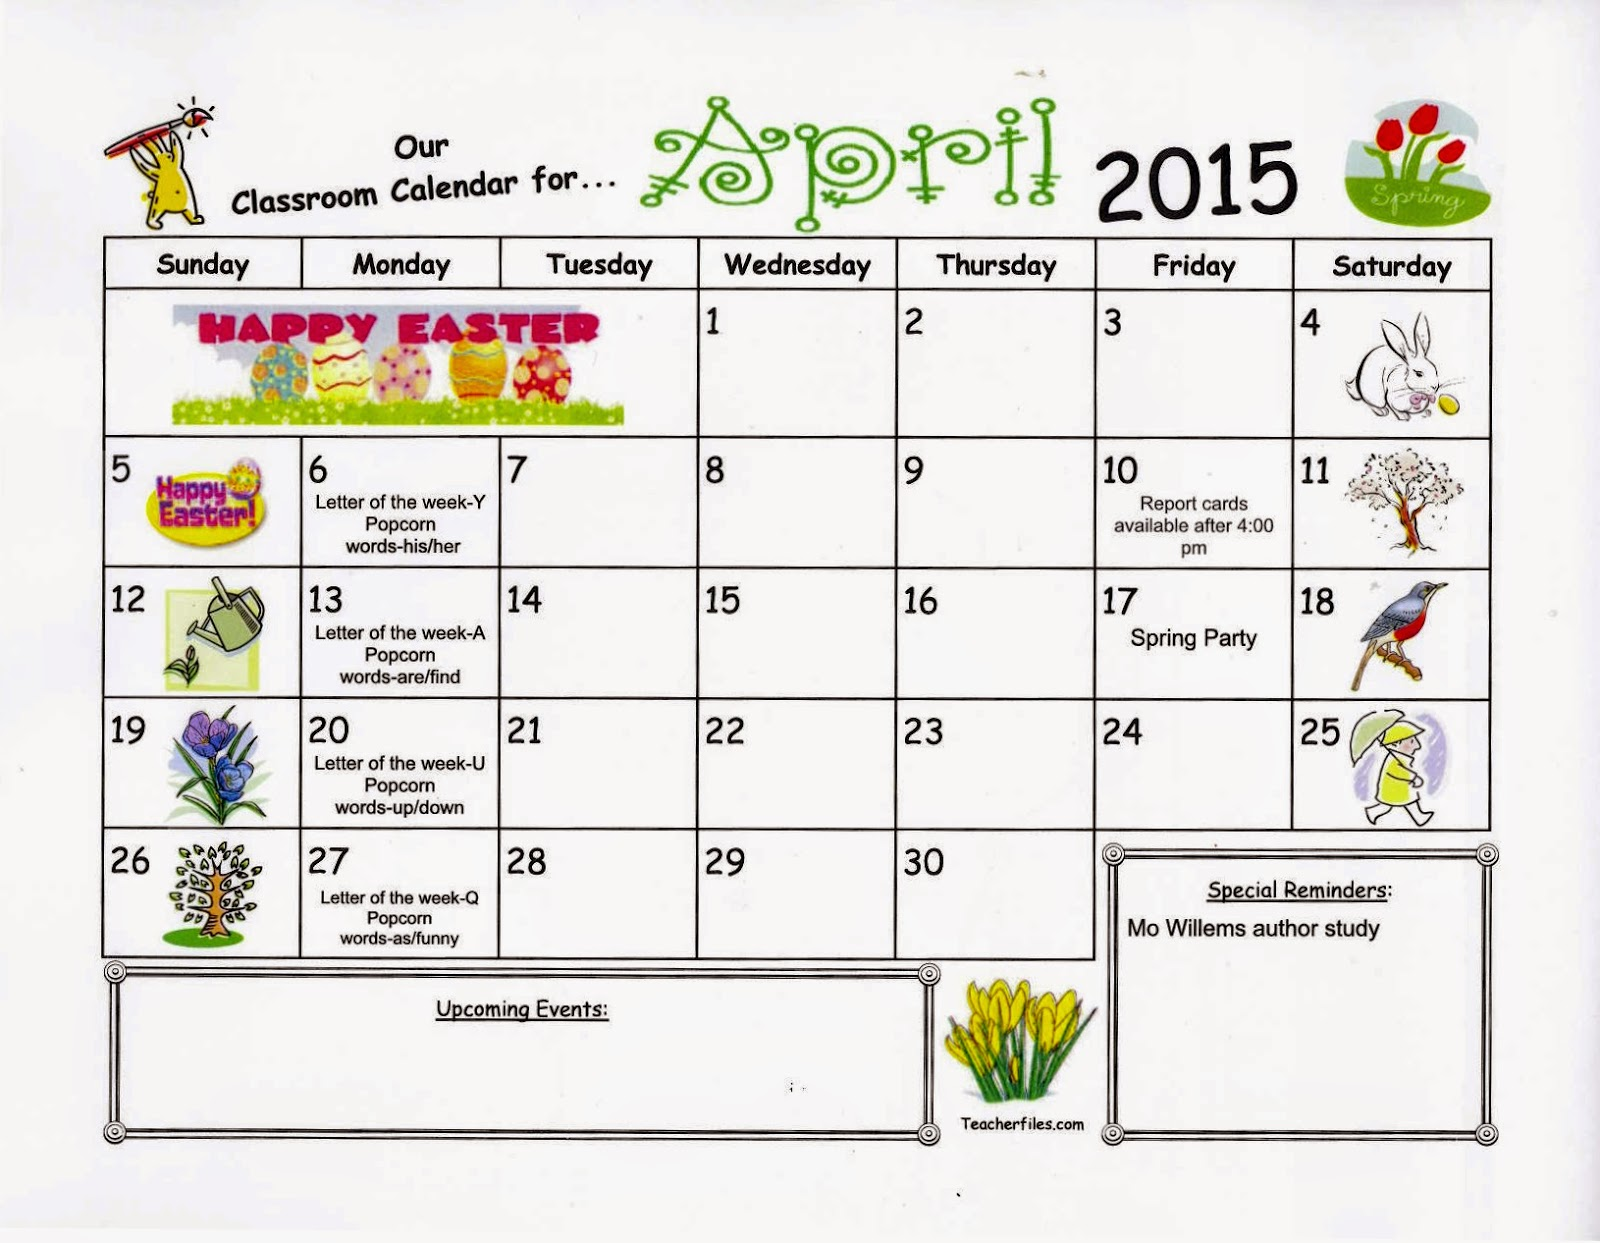 April Calendar S Kindergarten : Working and learning in kindergarten april calendar